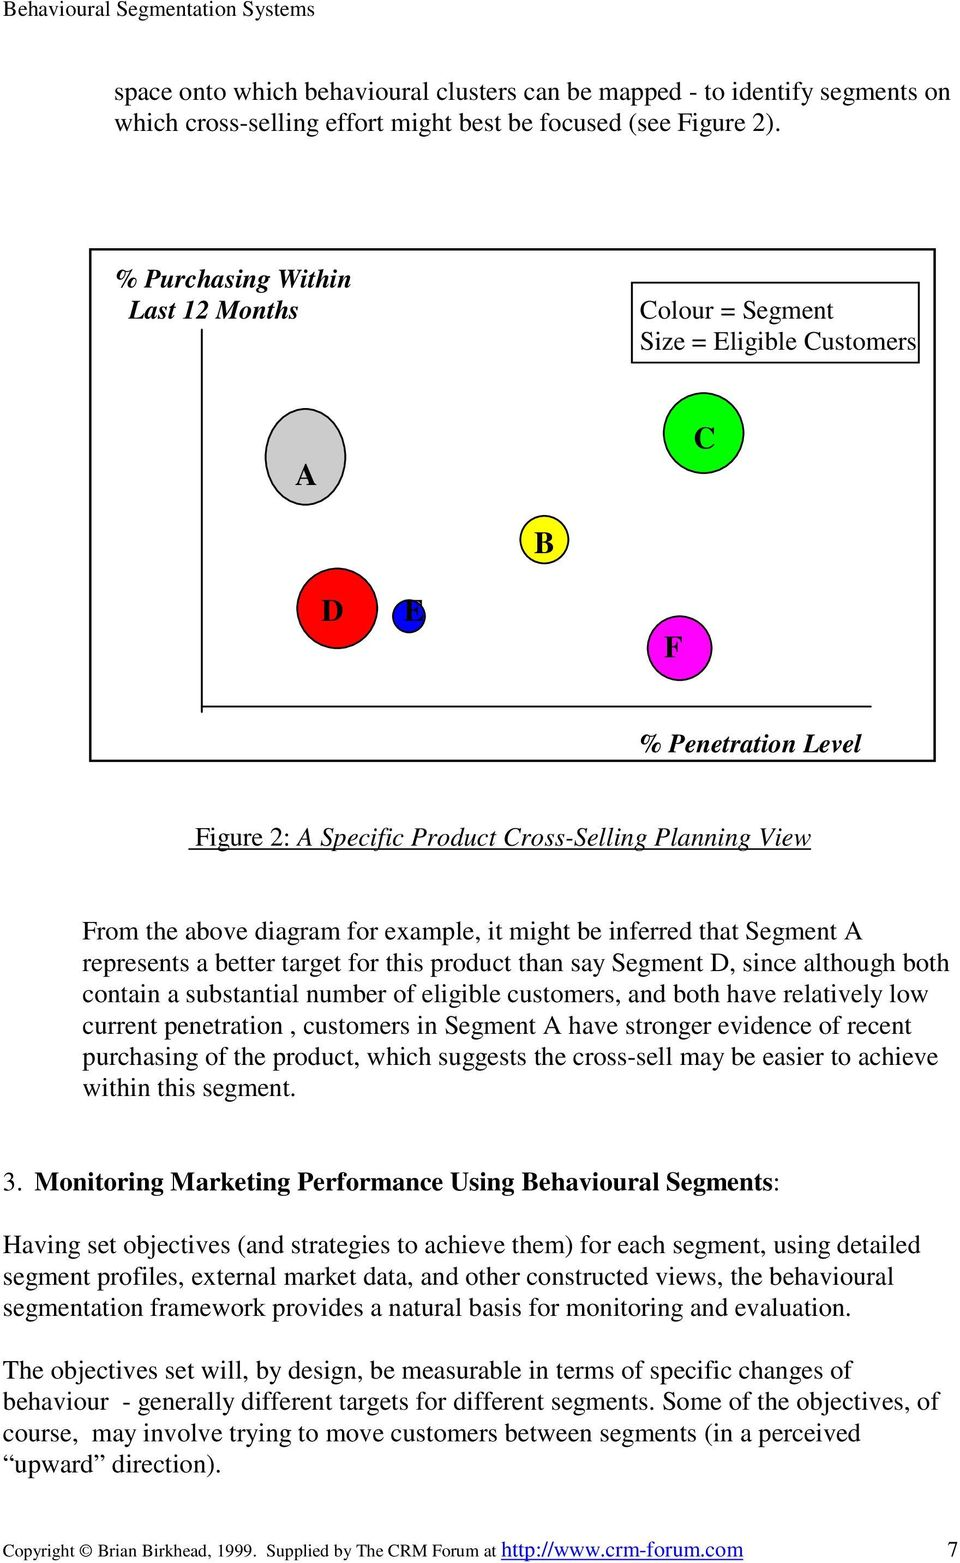 example, it might be inferred that Segment A represents a better target for this product than say Segment D, since although both contain a substantial number of eligible customers, and both have